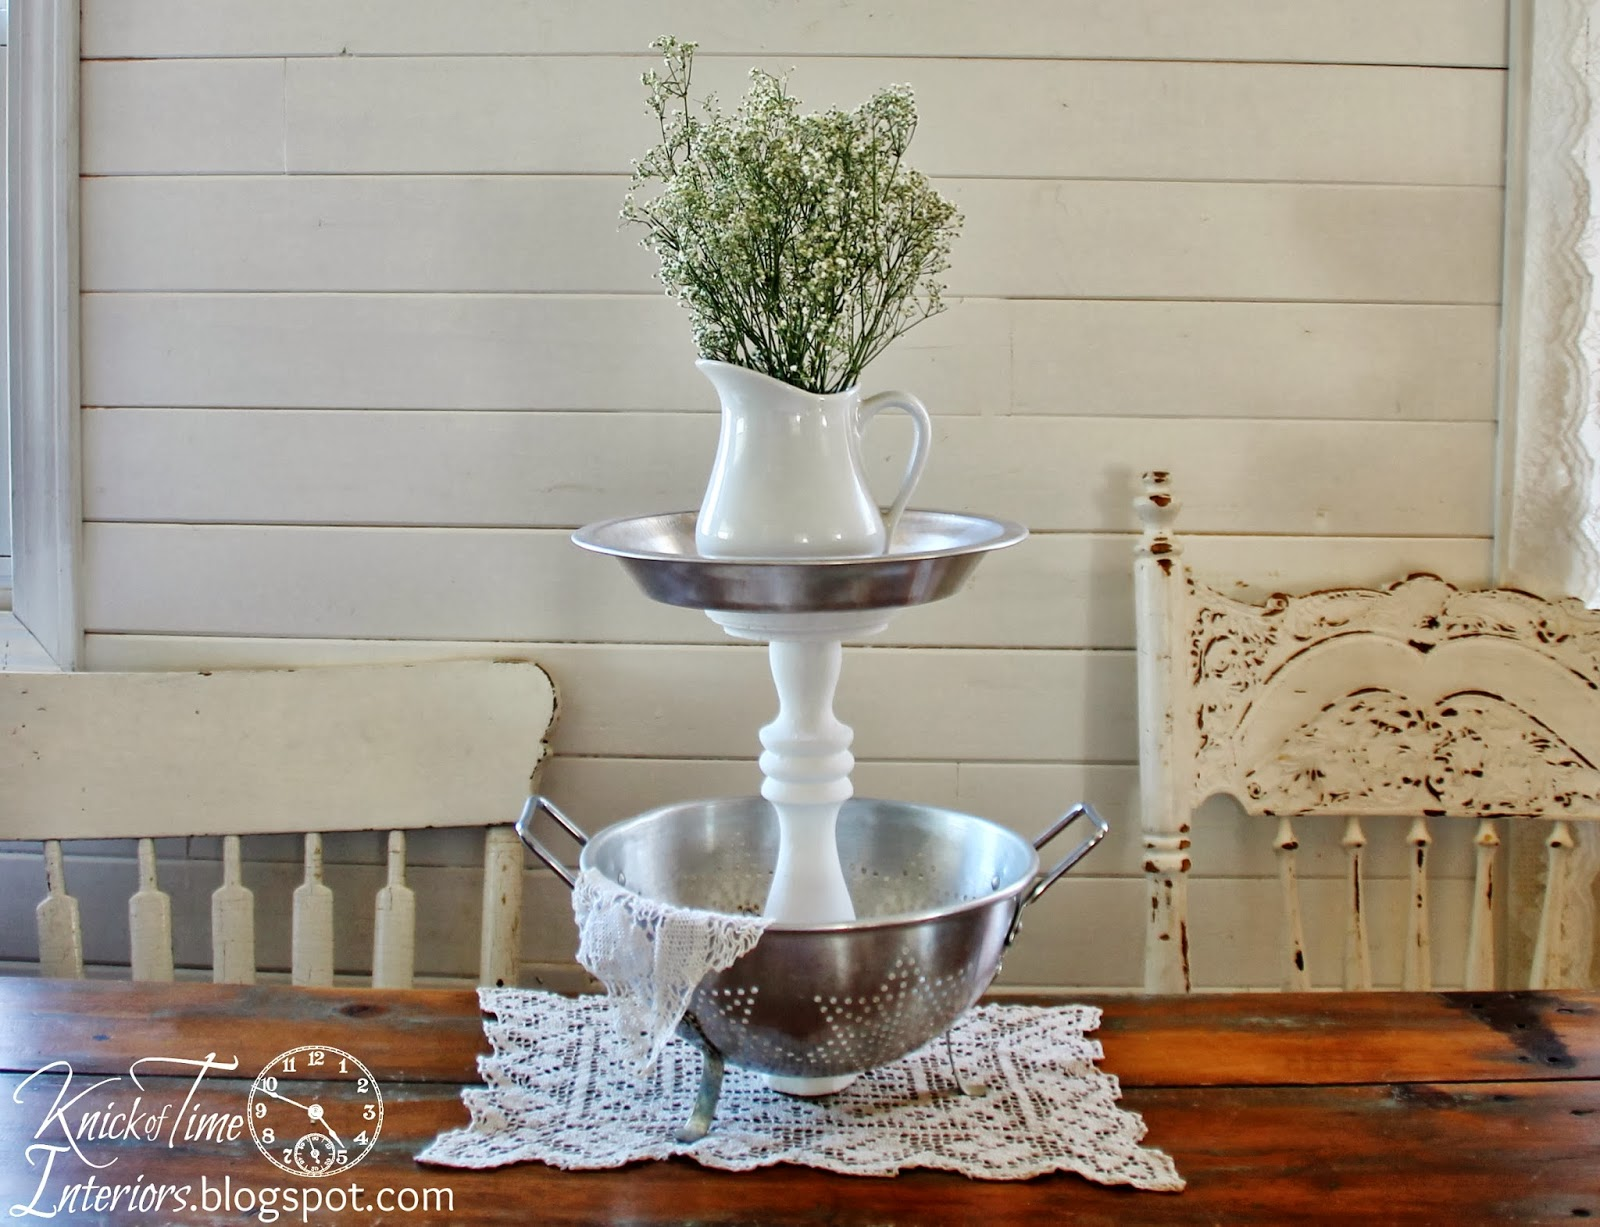 repurposed-metal-kitchen-strainer